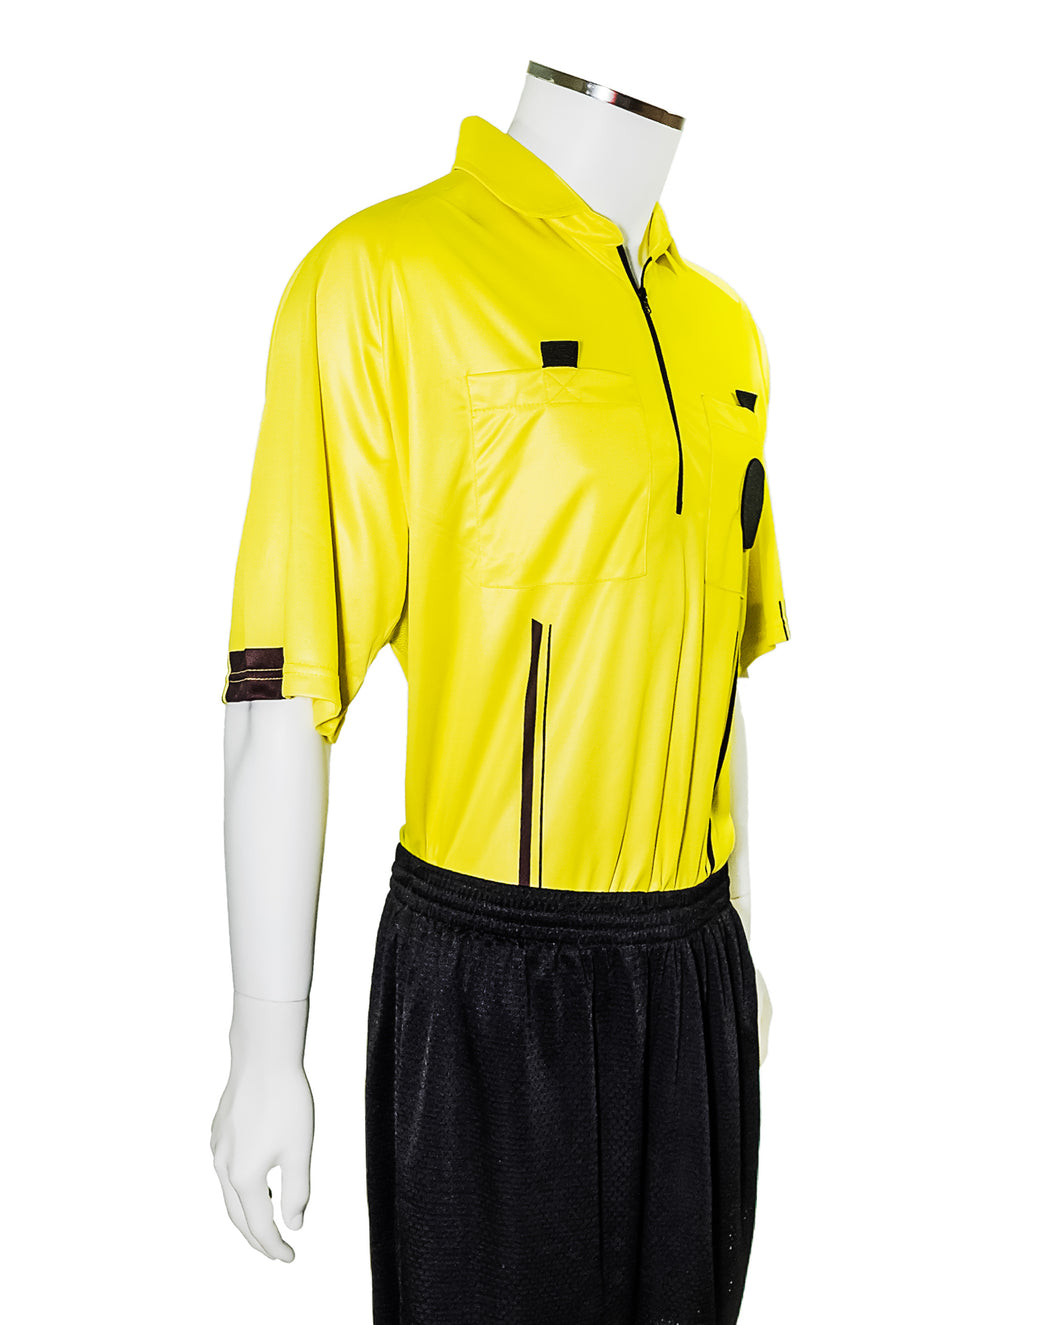 9840548df1b Where To Buy Rugby Referee Shirts – EDGE Engineering and Consulting ...